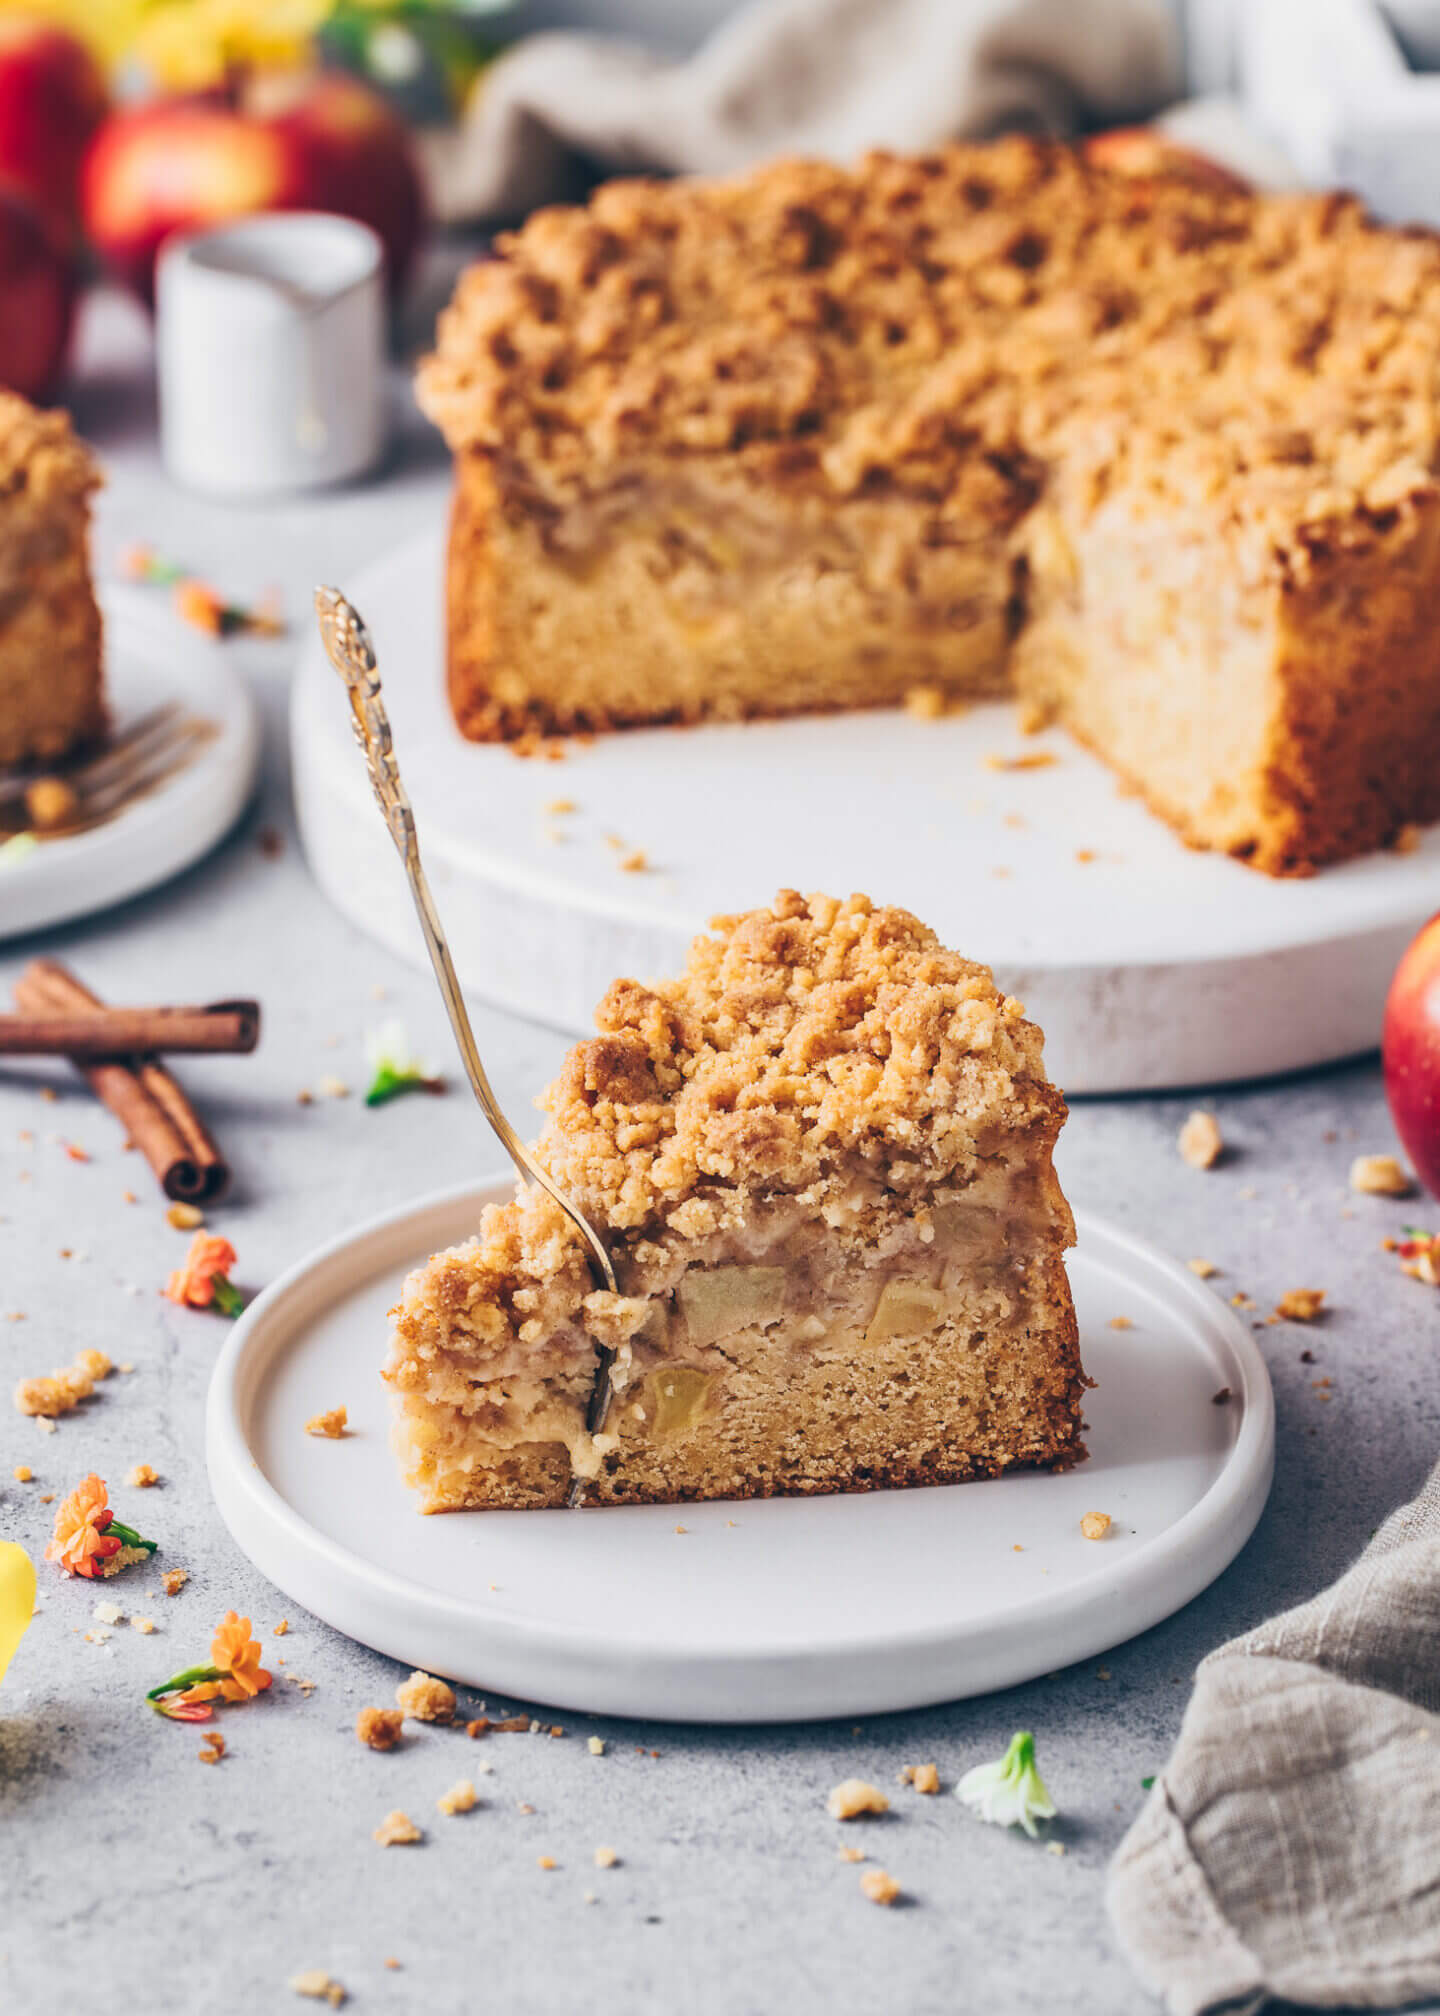 Best Vegan Apple Cake with Cinnamon Streusel